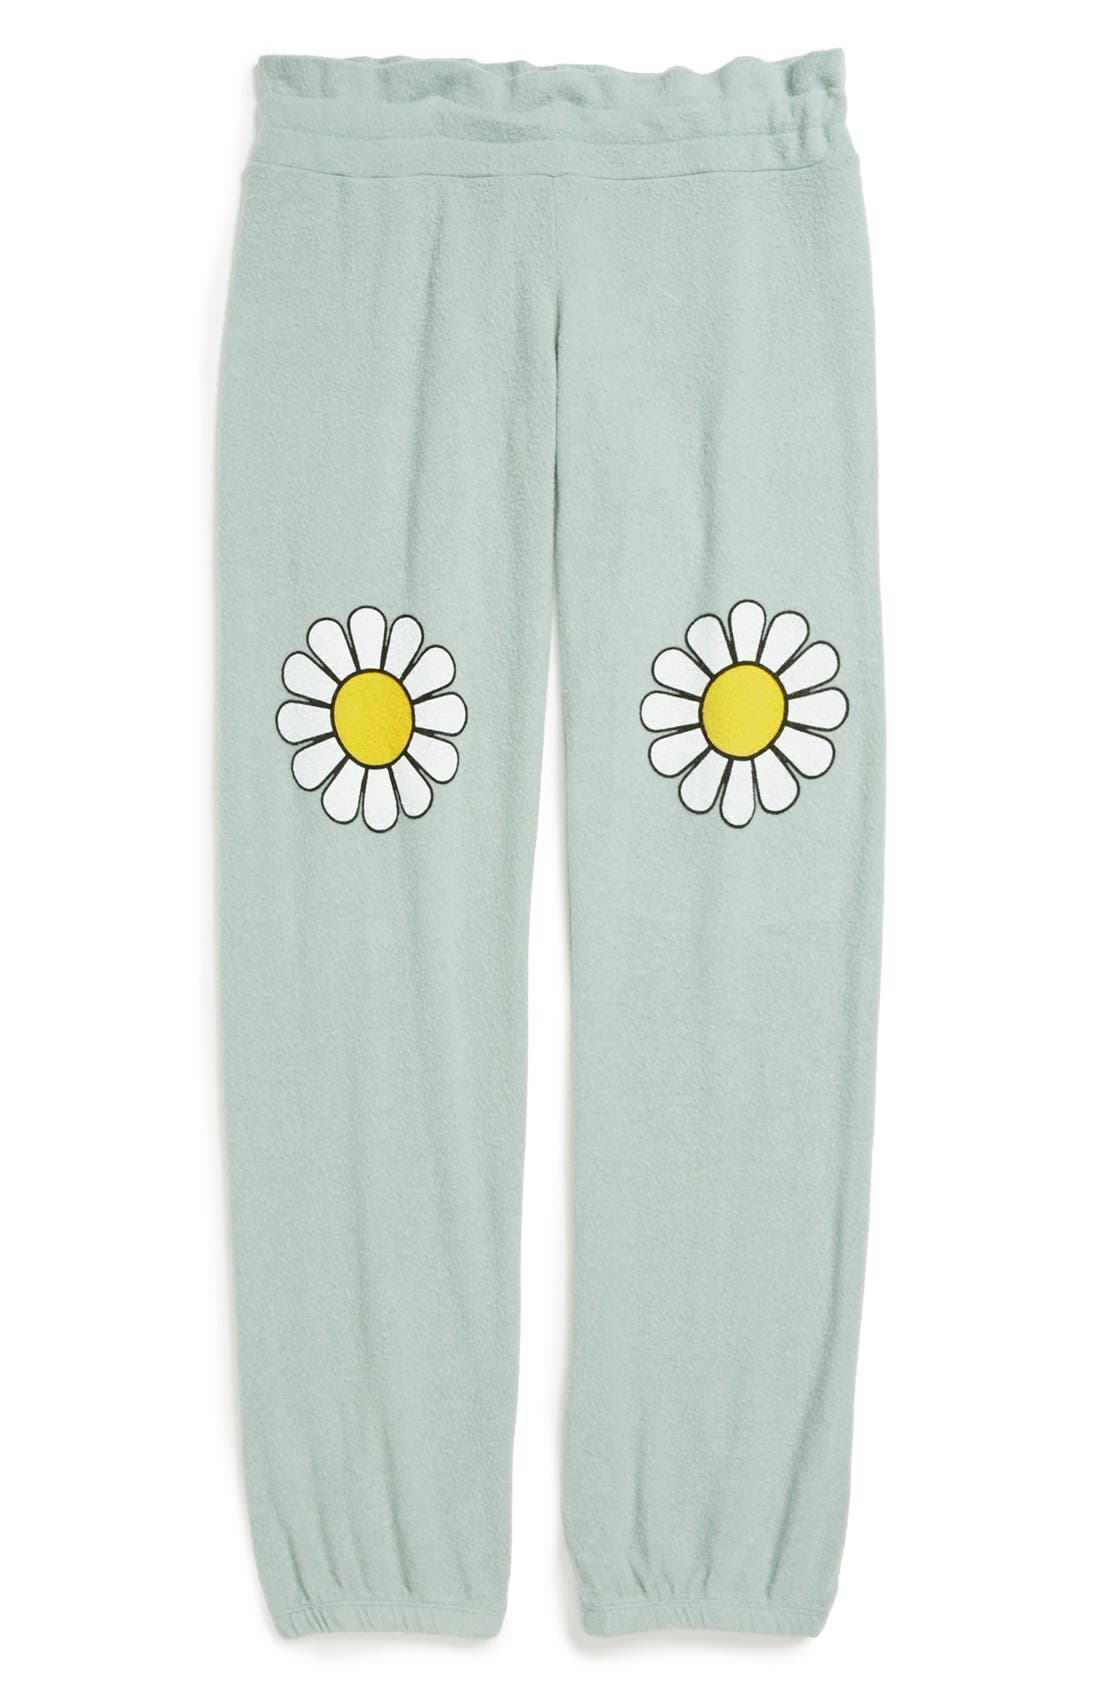 Main Image - Wildfox 'Oh Daisy' Pants (Big Girls)